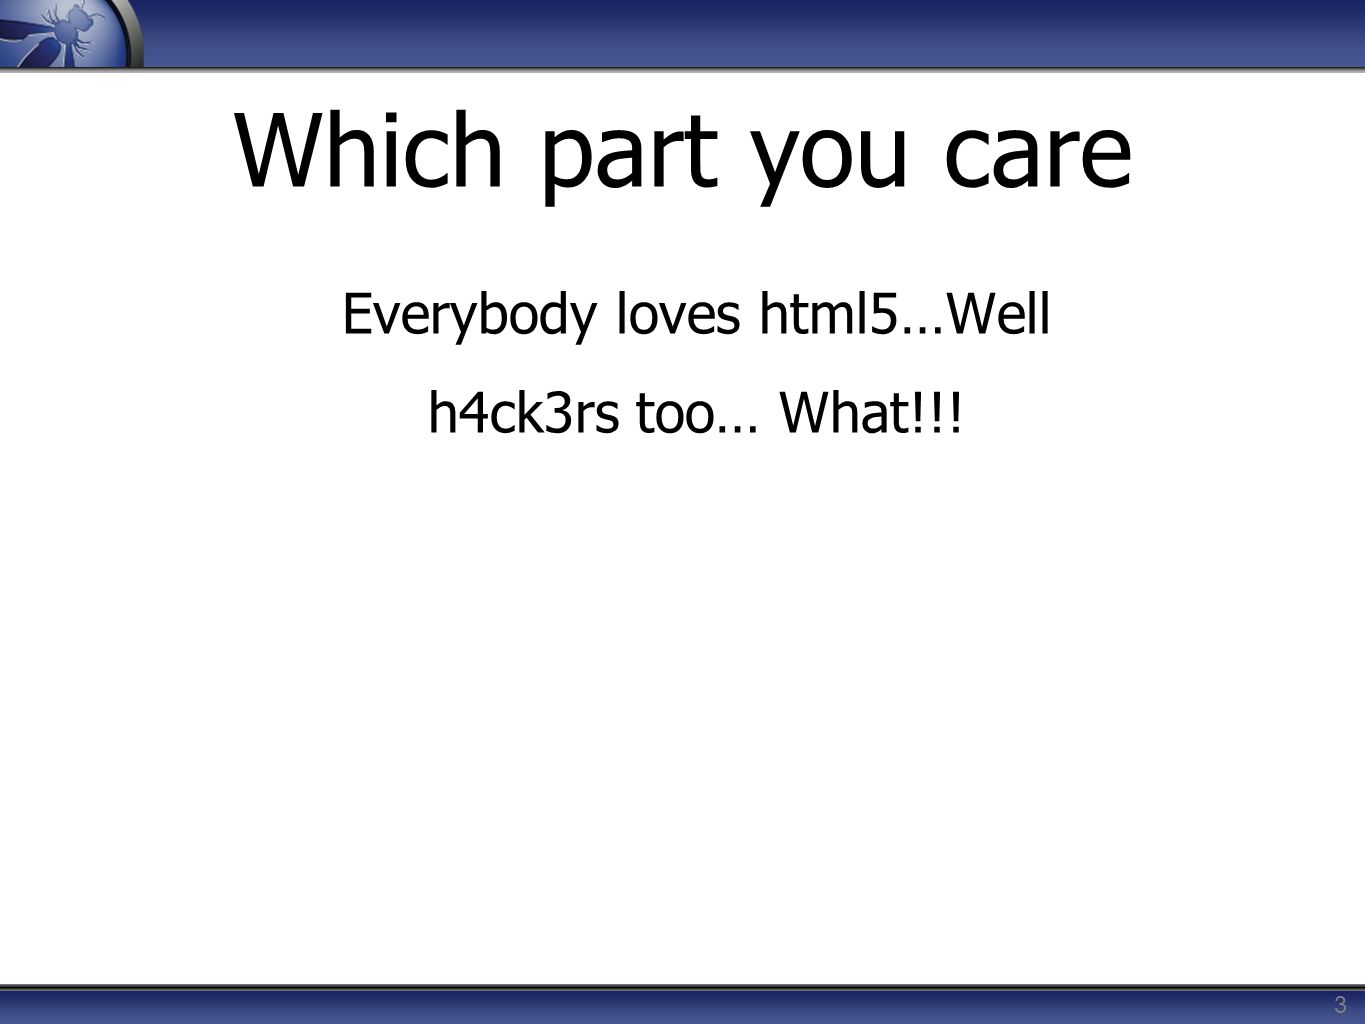 Everybody loves html5…Well h4ck3rs too… What!!!